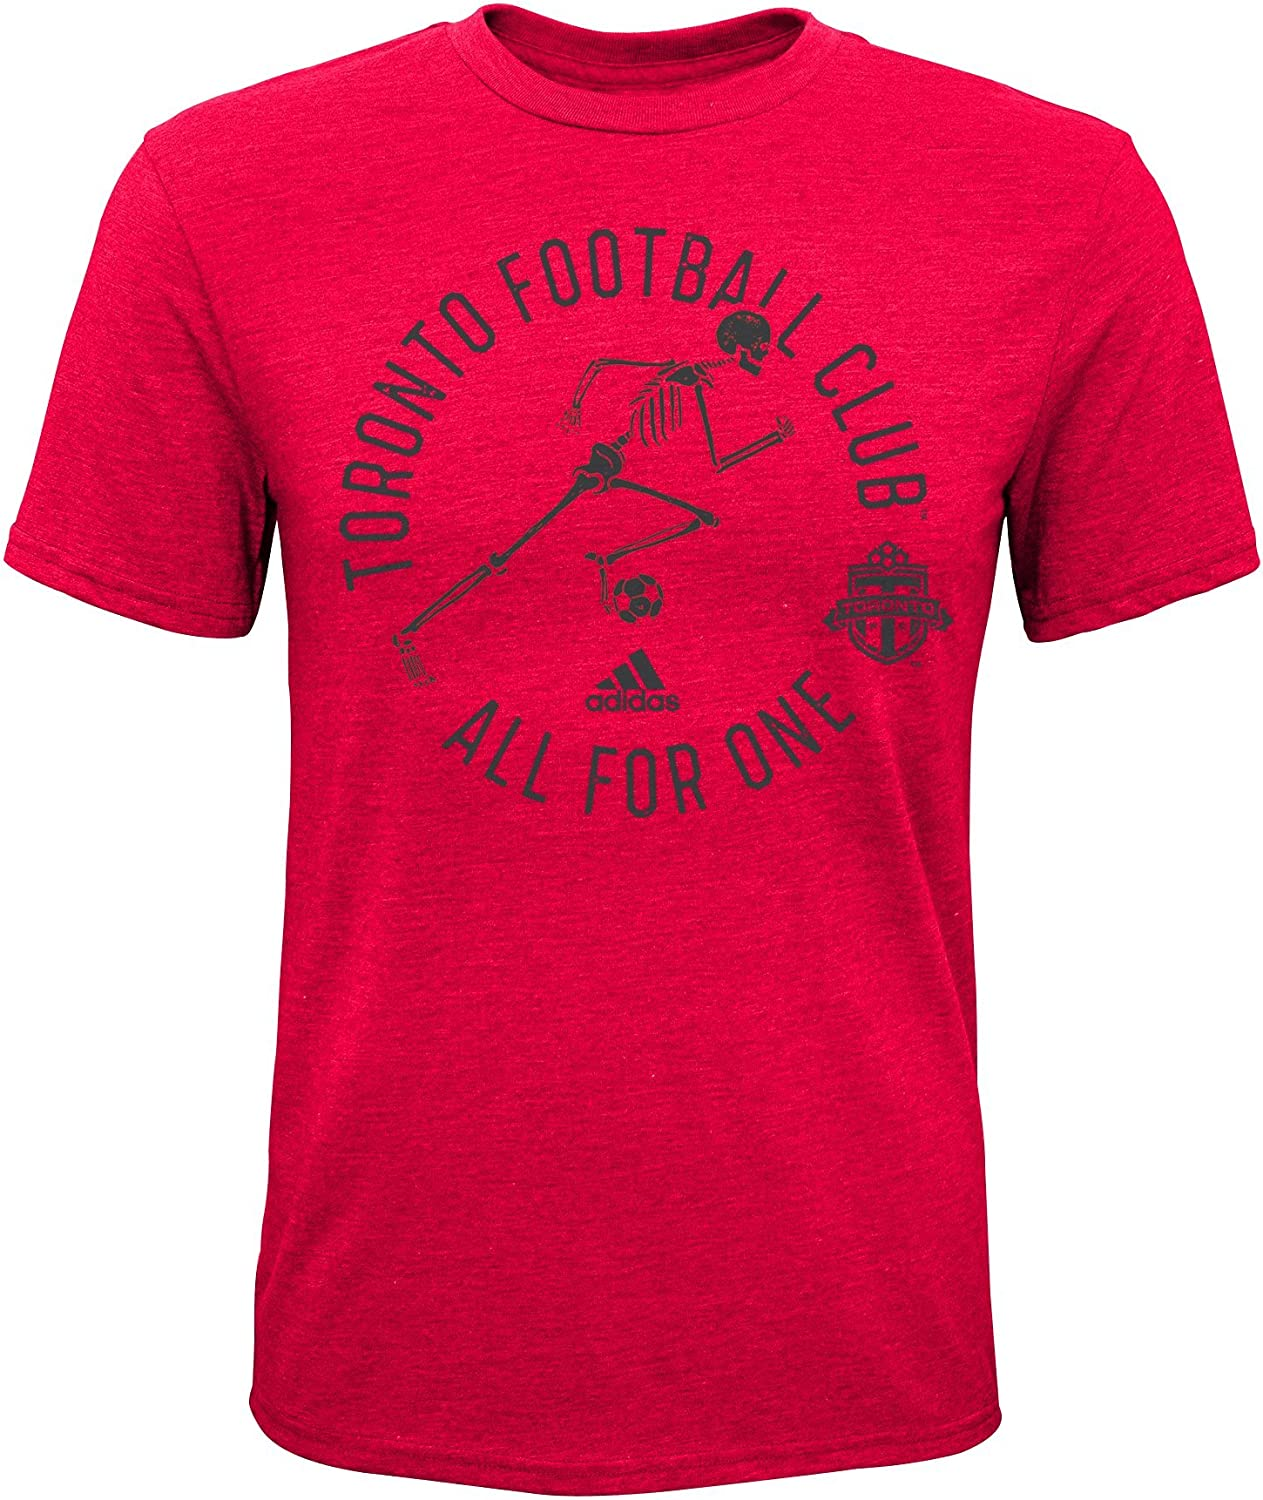 MLS Kids /& Youth Boys  To the Grave Short Sleeve Tee